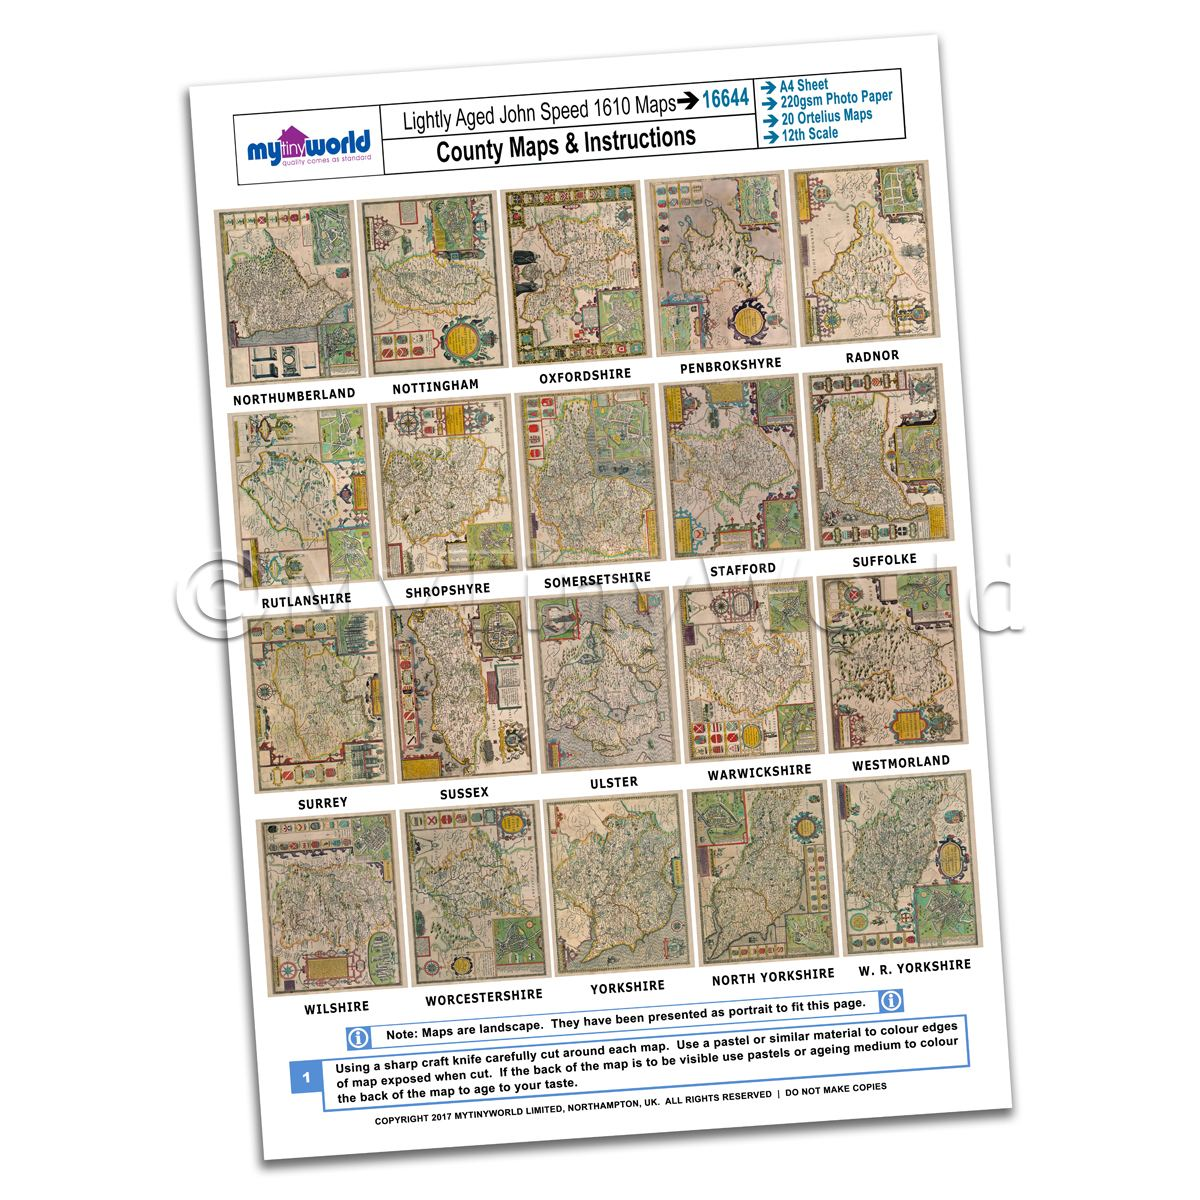 Dolls House 20 John Speed UK County Maps A4 Value Sheet 3